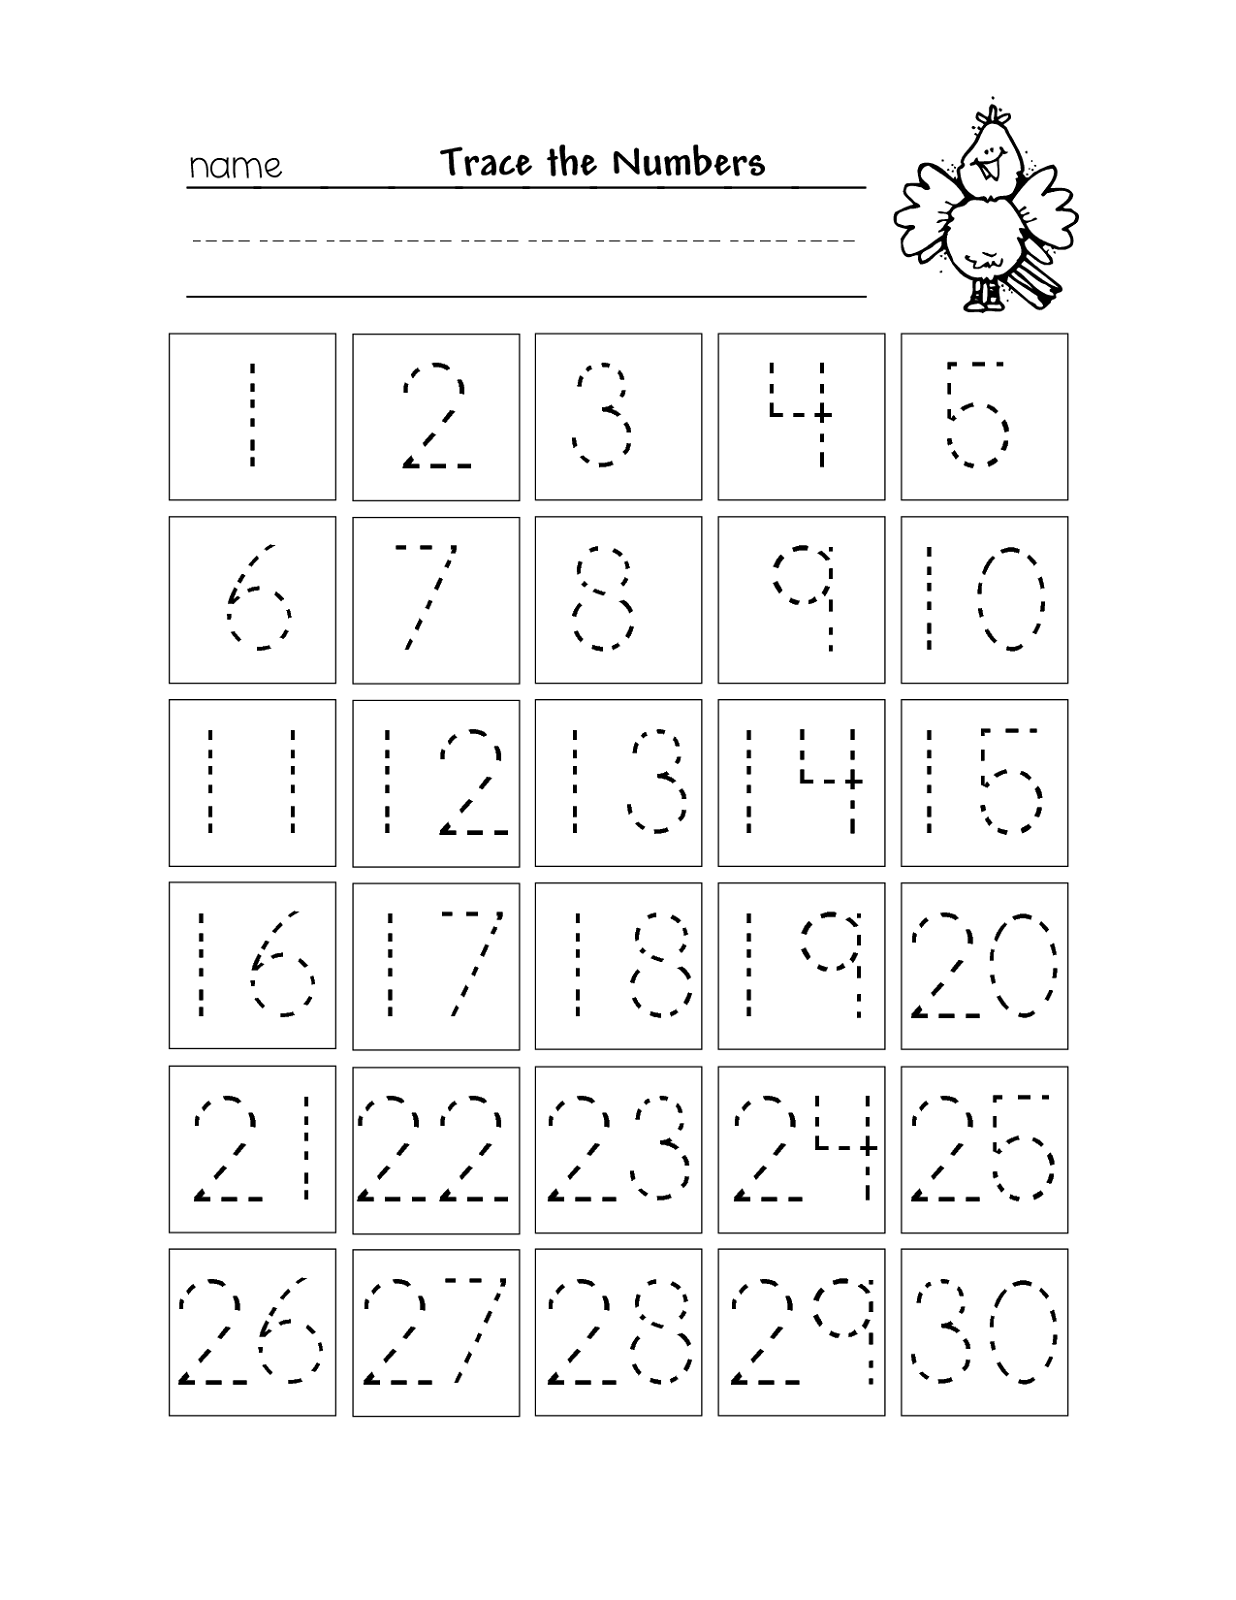 Trace The Numbers 1-30   Kiddo Shelter   Preschool Number